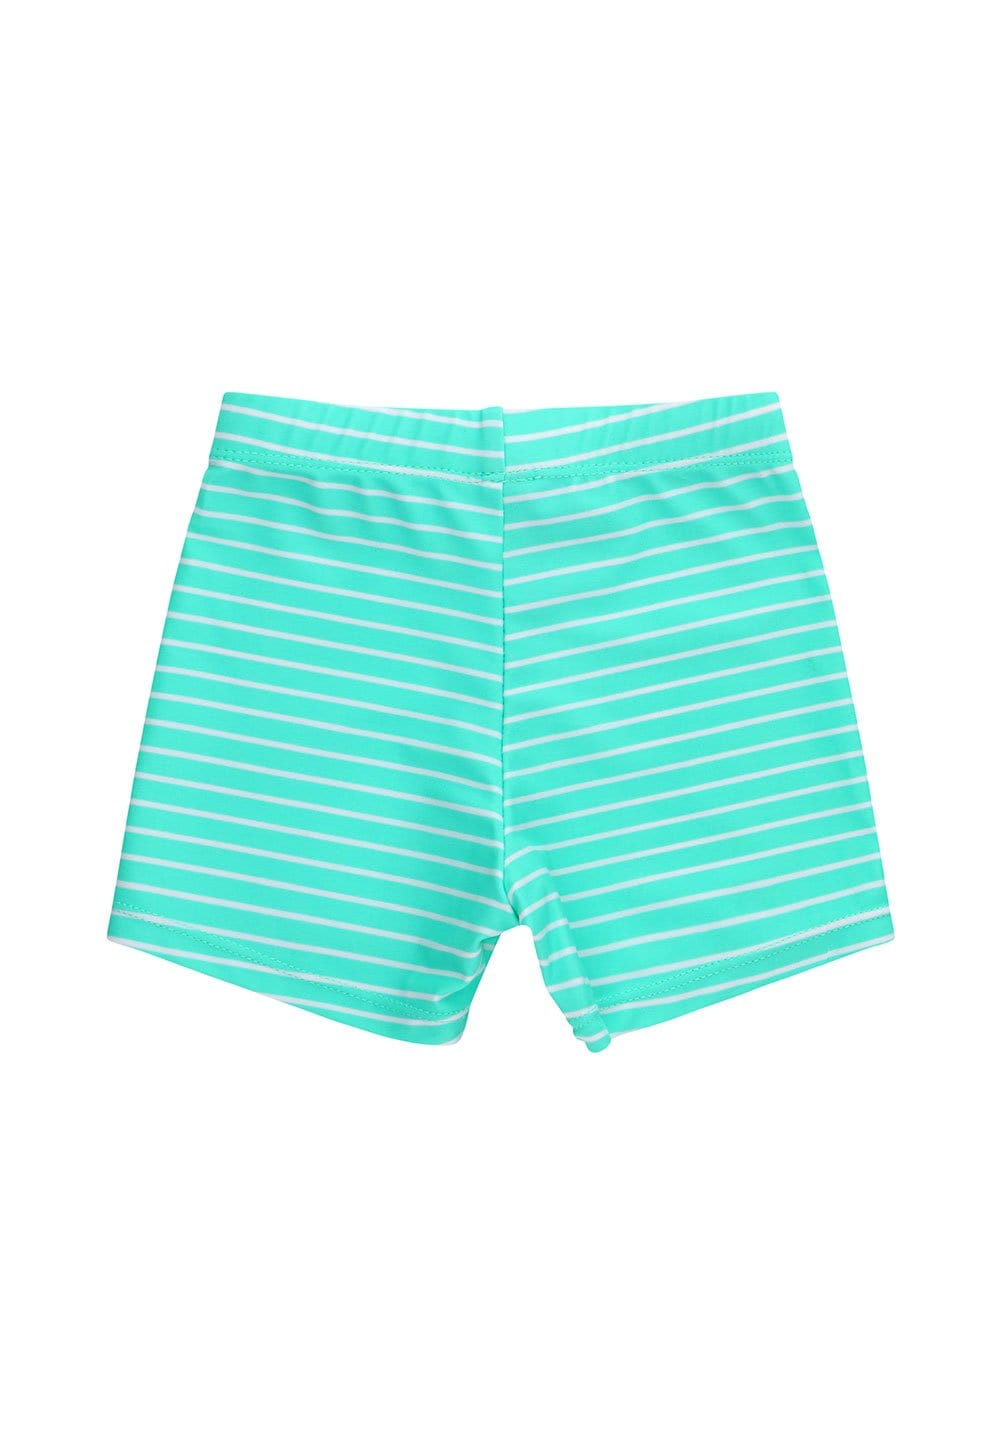 UPF50+ Junior Bottom (Unisex) in Bubblegum Print